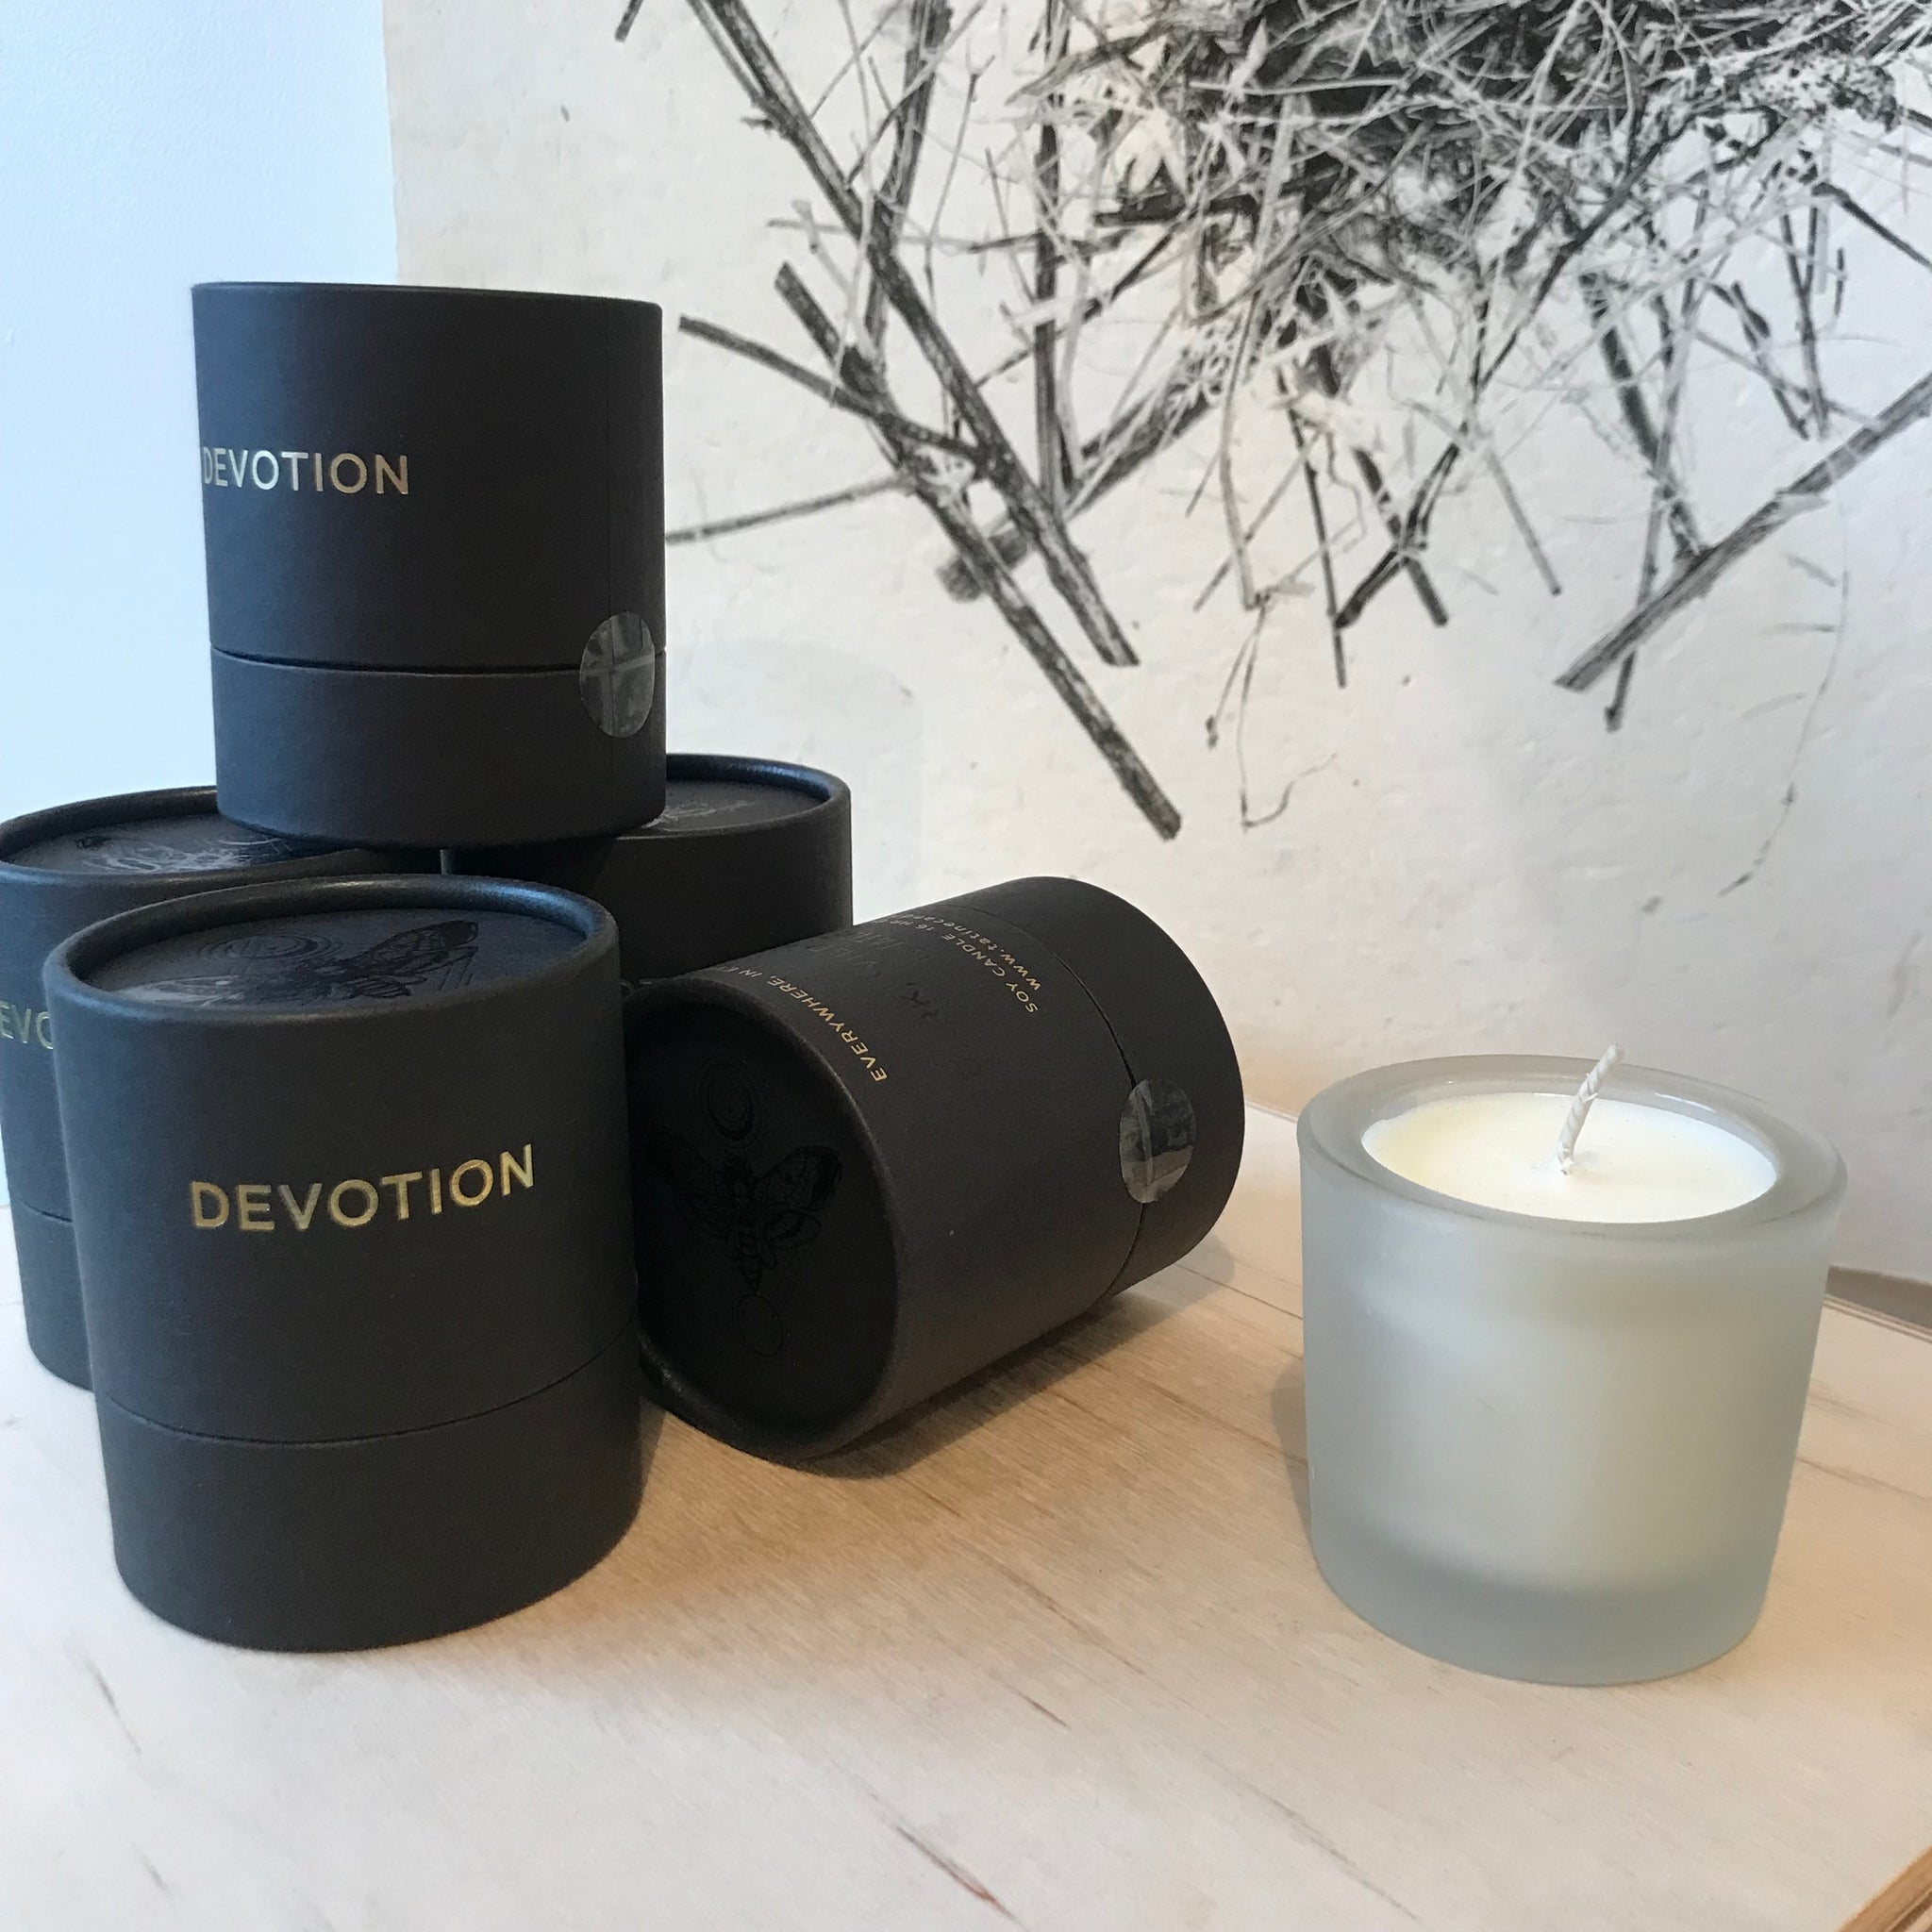 Devotion Hand-Poured Candle by Tatine - Upstate MN